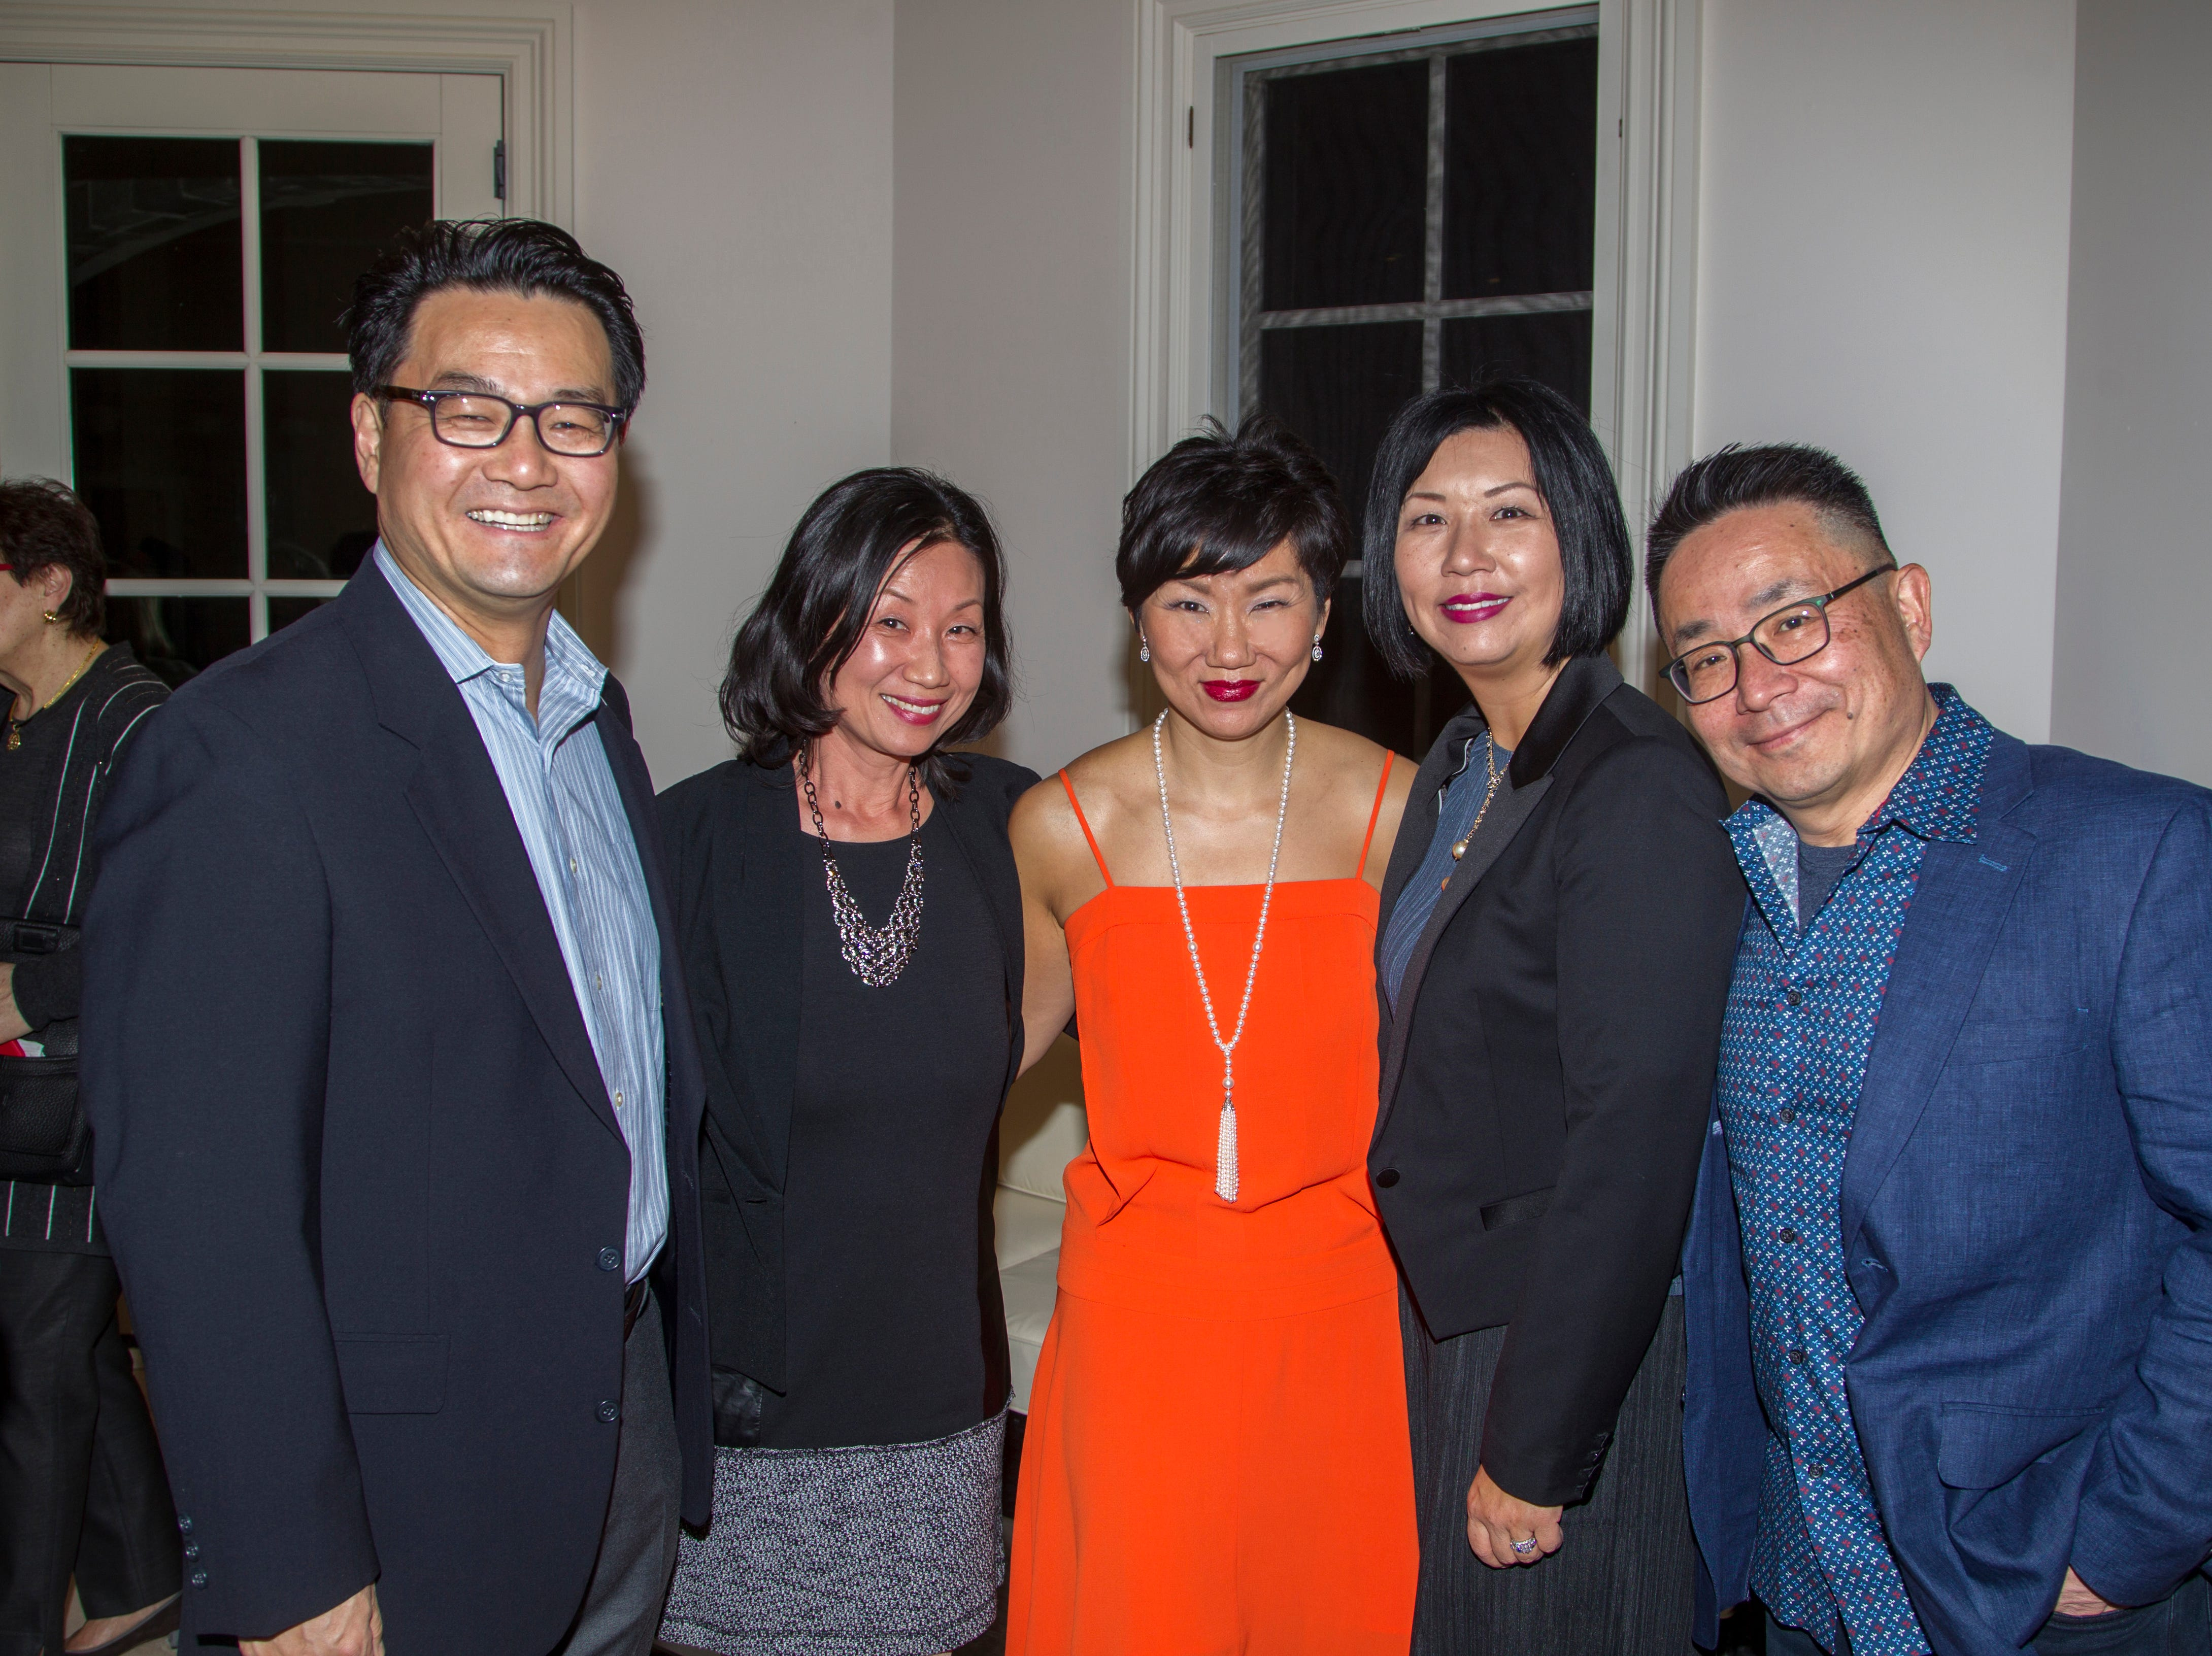 Henry Kim, Jeannie Suh, Yuvette Lee, Eunice Lee, John Suh. Saddle River Arts Council presents An Evening of Giving Back featureing Eric Genuis in Saddle River. 03/30/2019